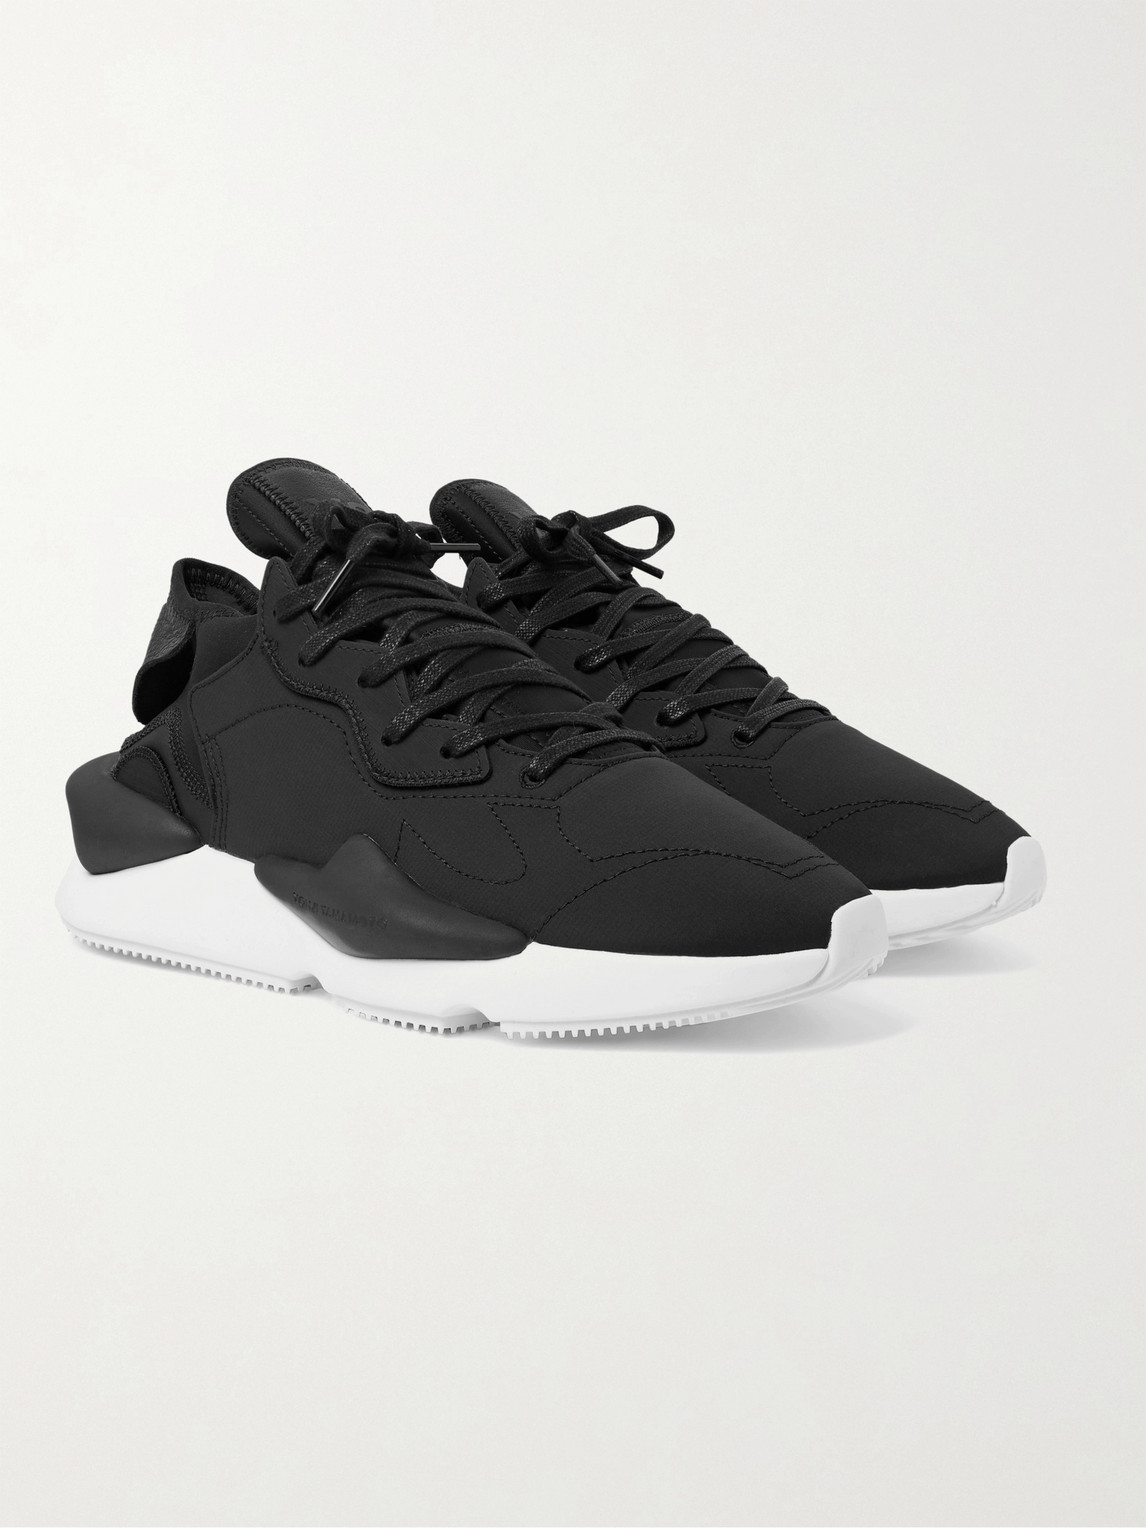 Y-3 KAIWA LEATHER-TRIMMED NYLON-RIPSTOP AND NEOPRENE SNEAKERS